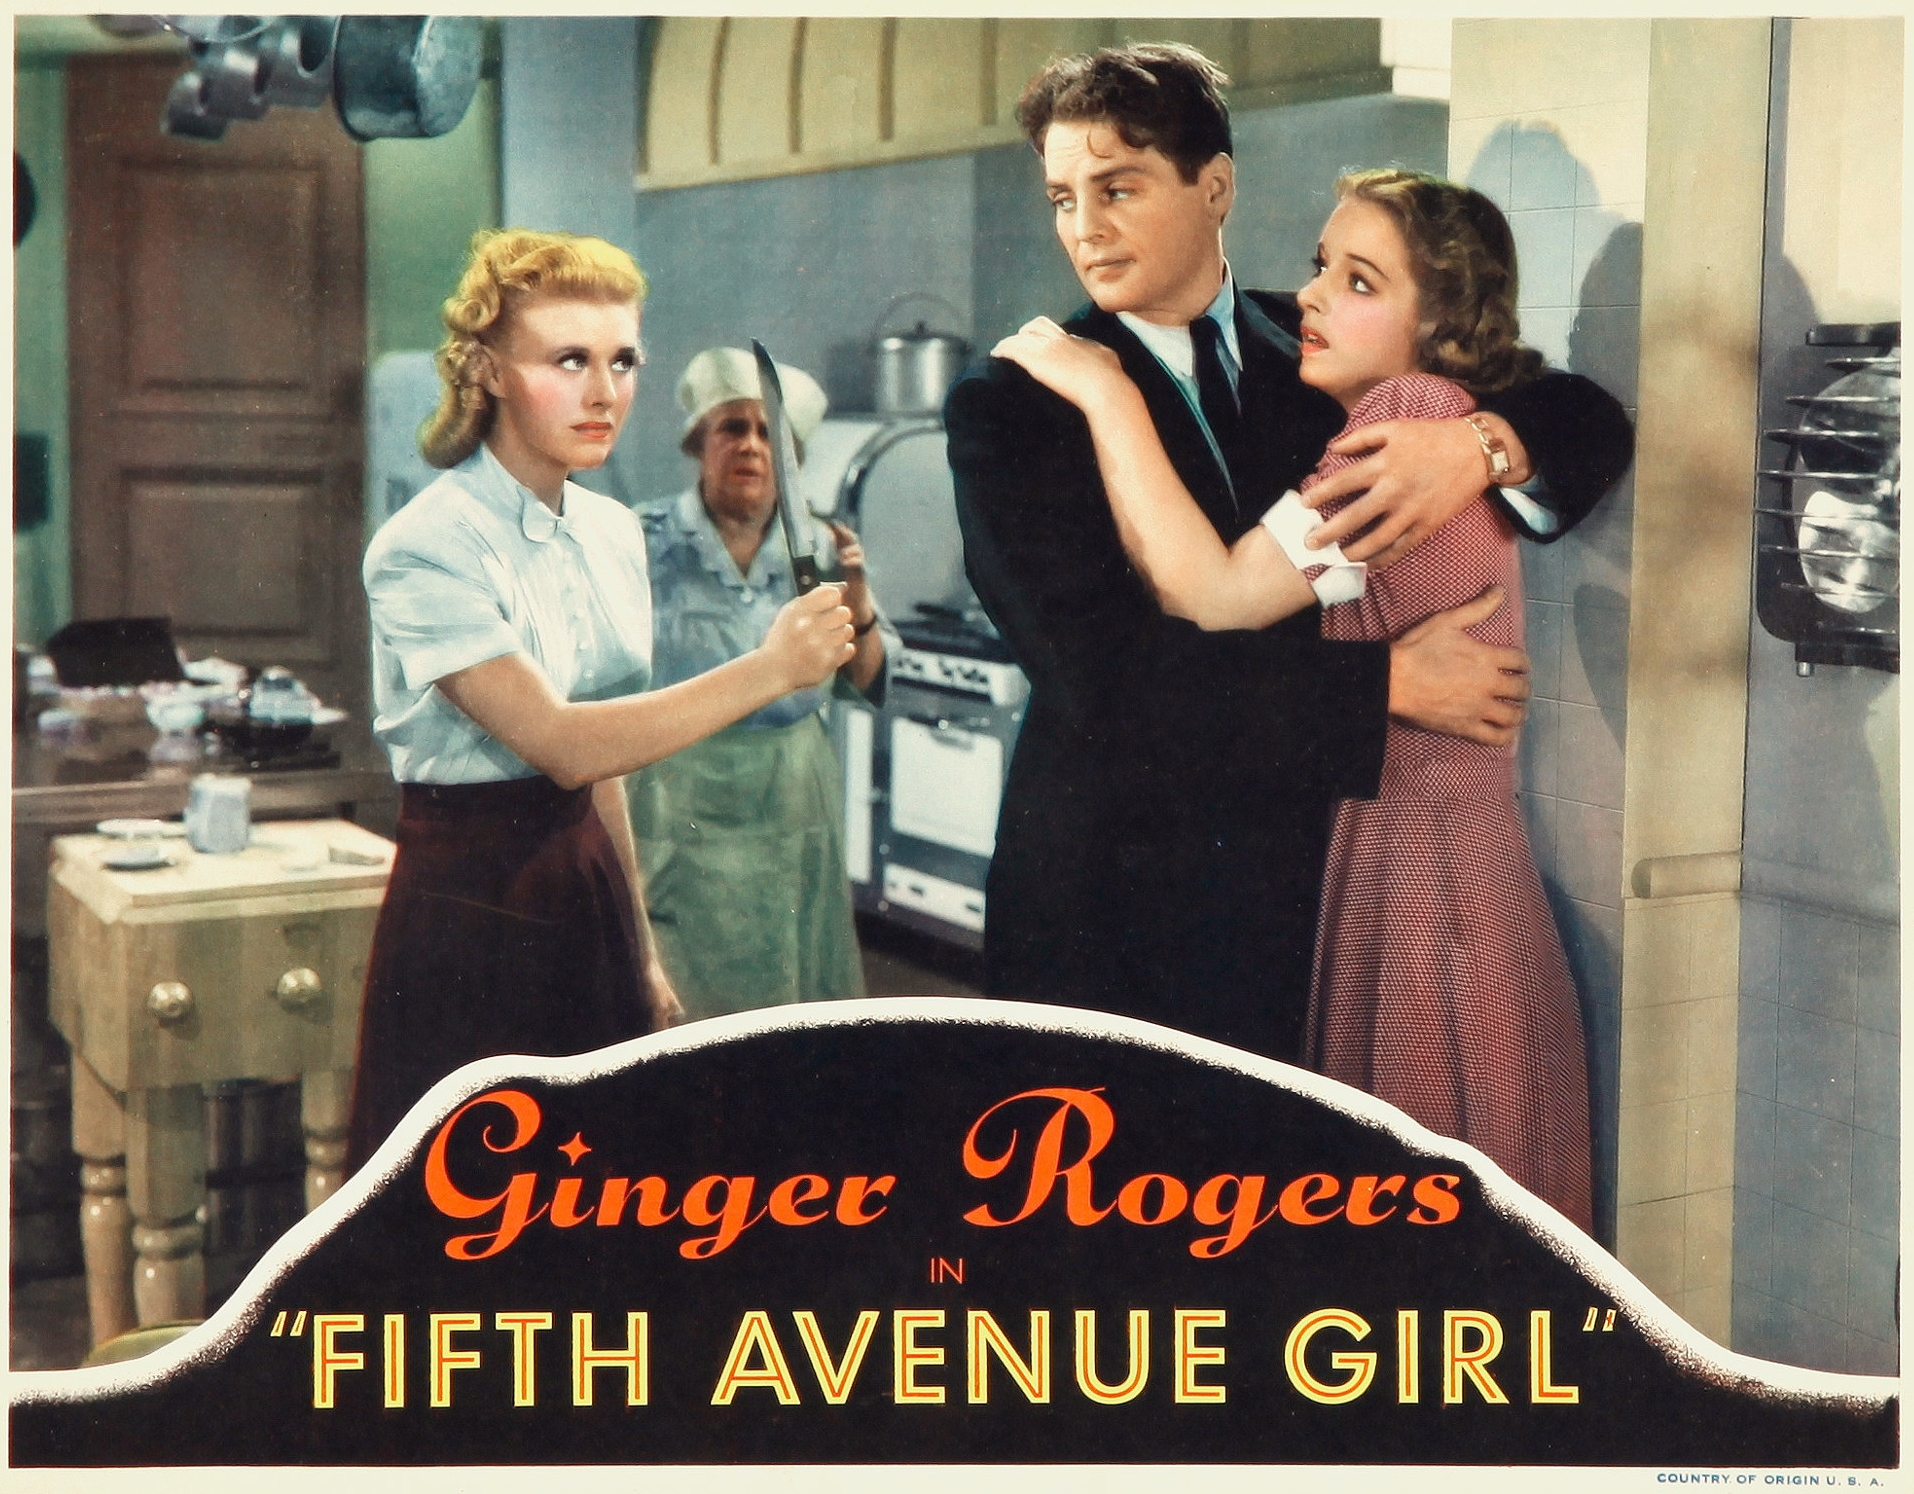 Ginger Rogers, Kathryn Adams, Ferike Boros, and James Ellison in Fifth Avenue Girl (1939)